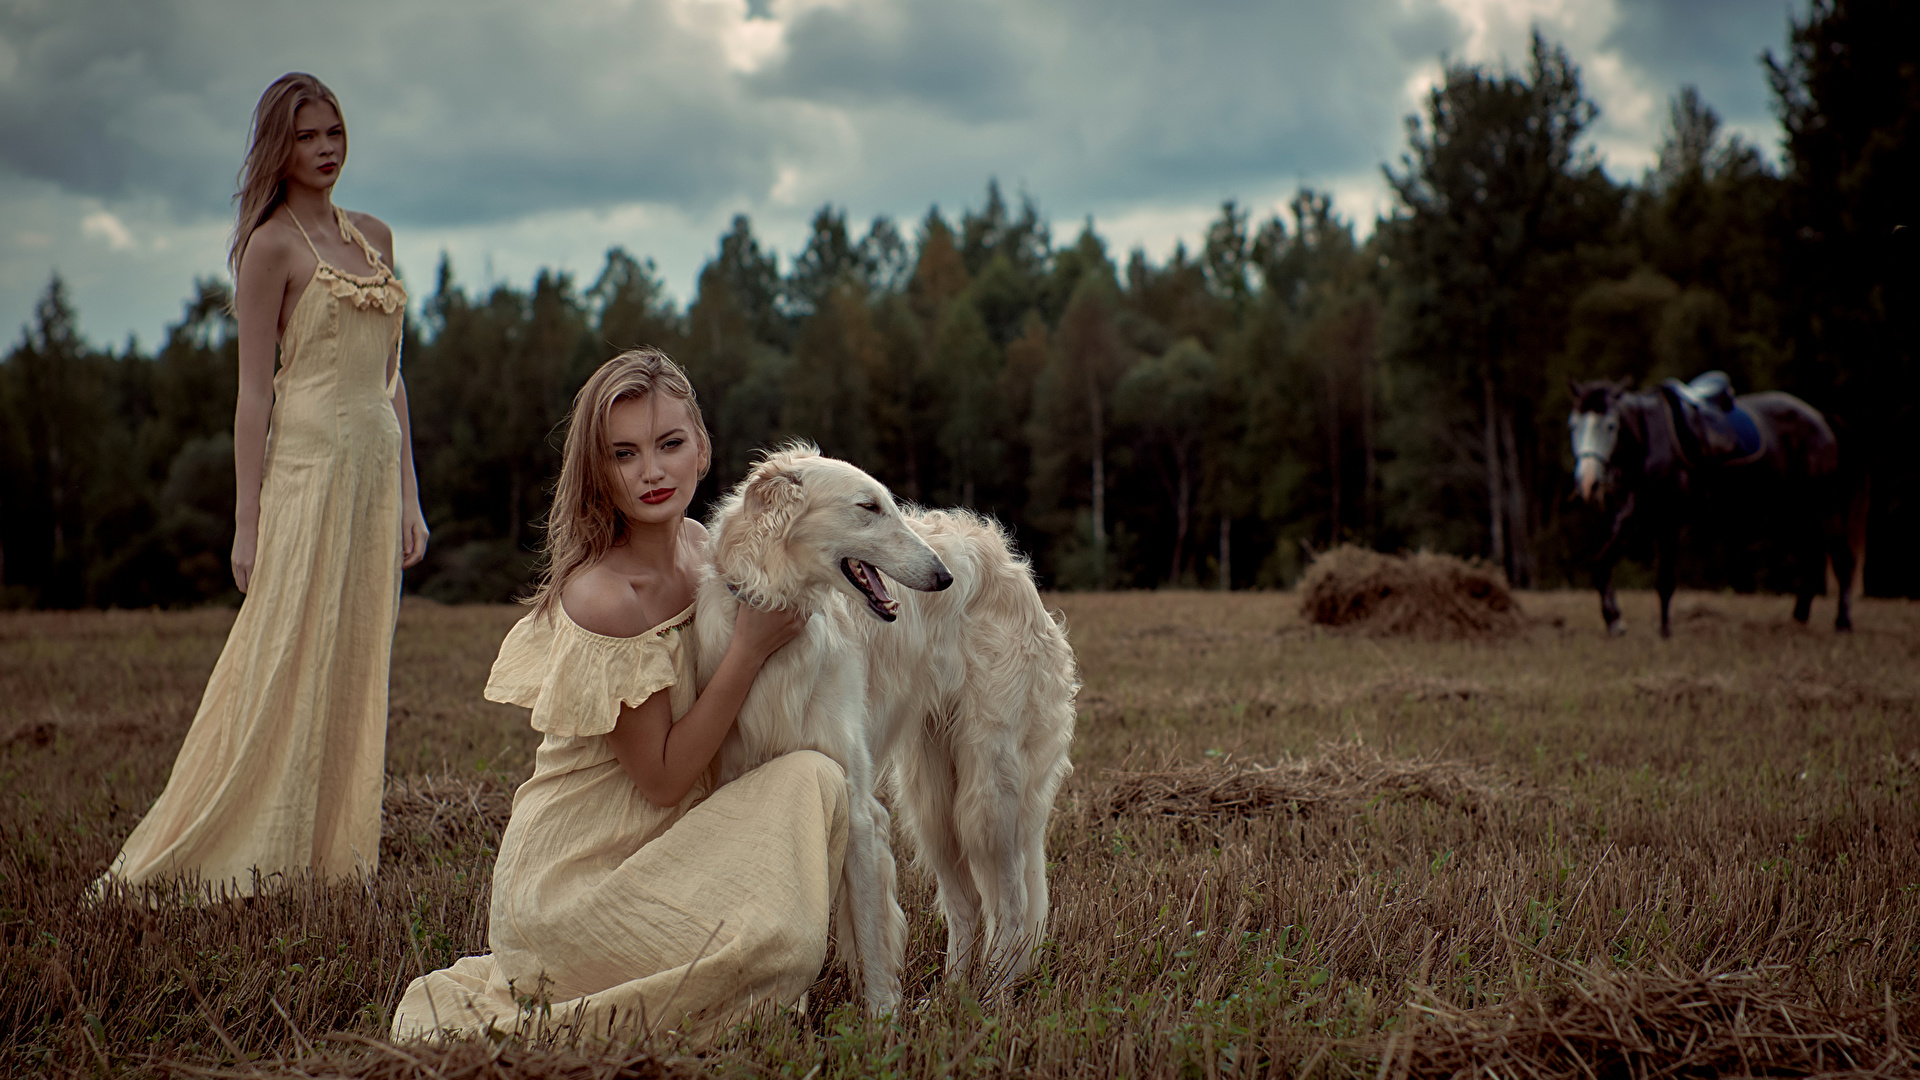 Picture Sighthound dog Russian hunting sighthound 2 young woman Animals frock 1920x1080 Dogs Two Girls female animal gown Dress